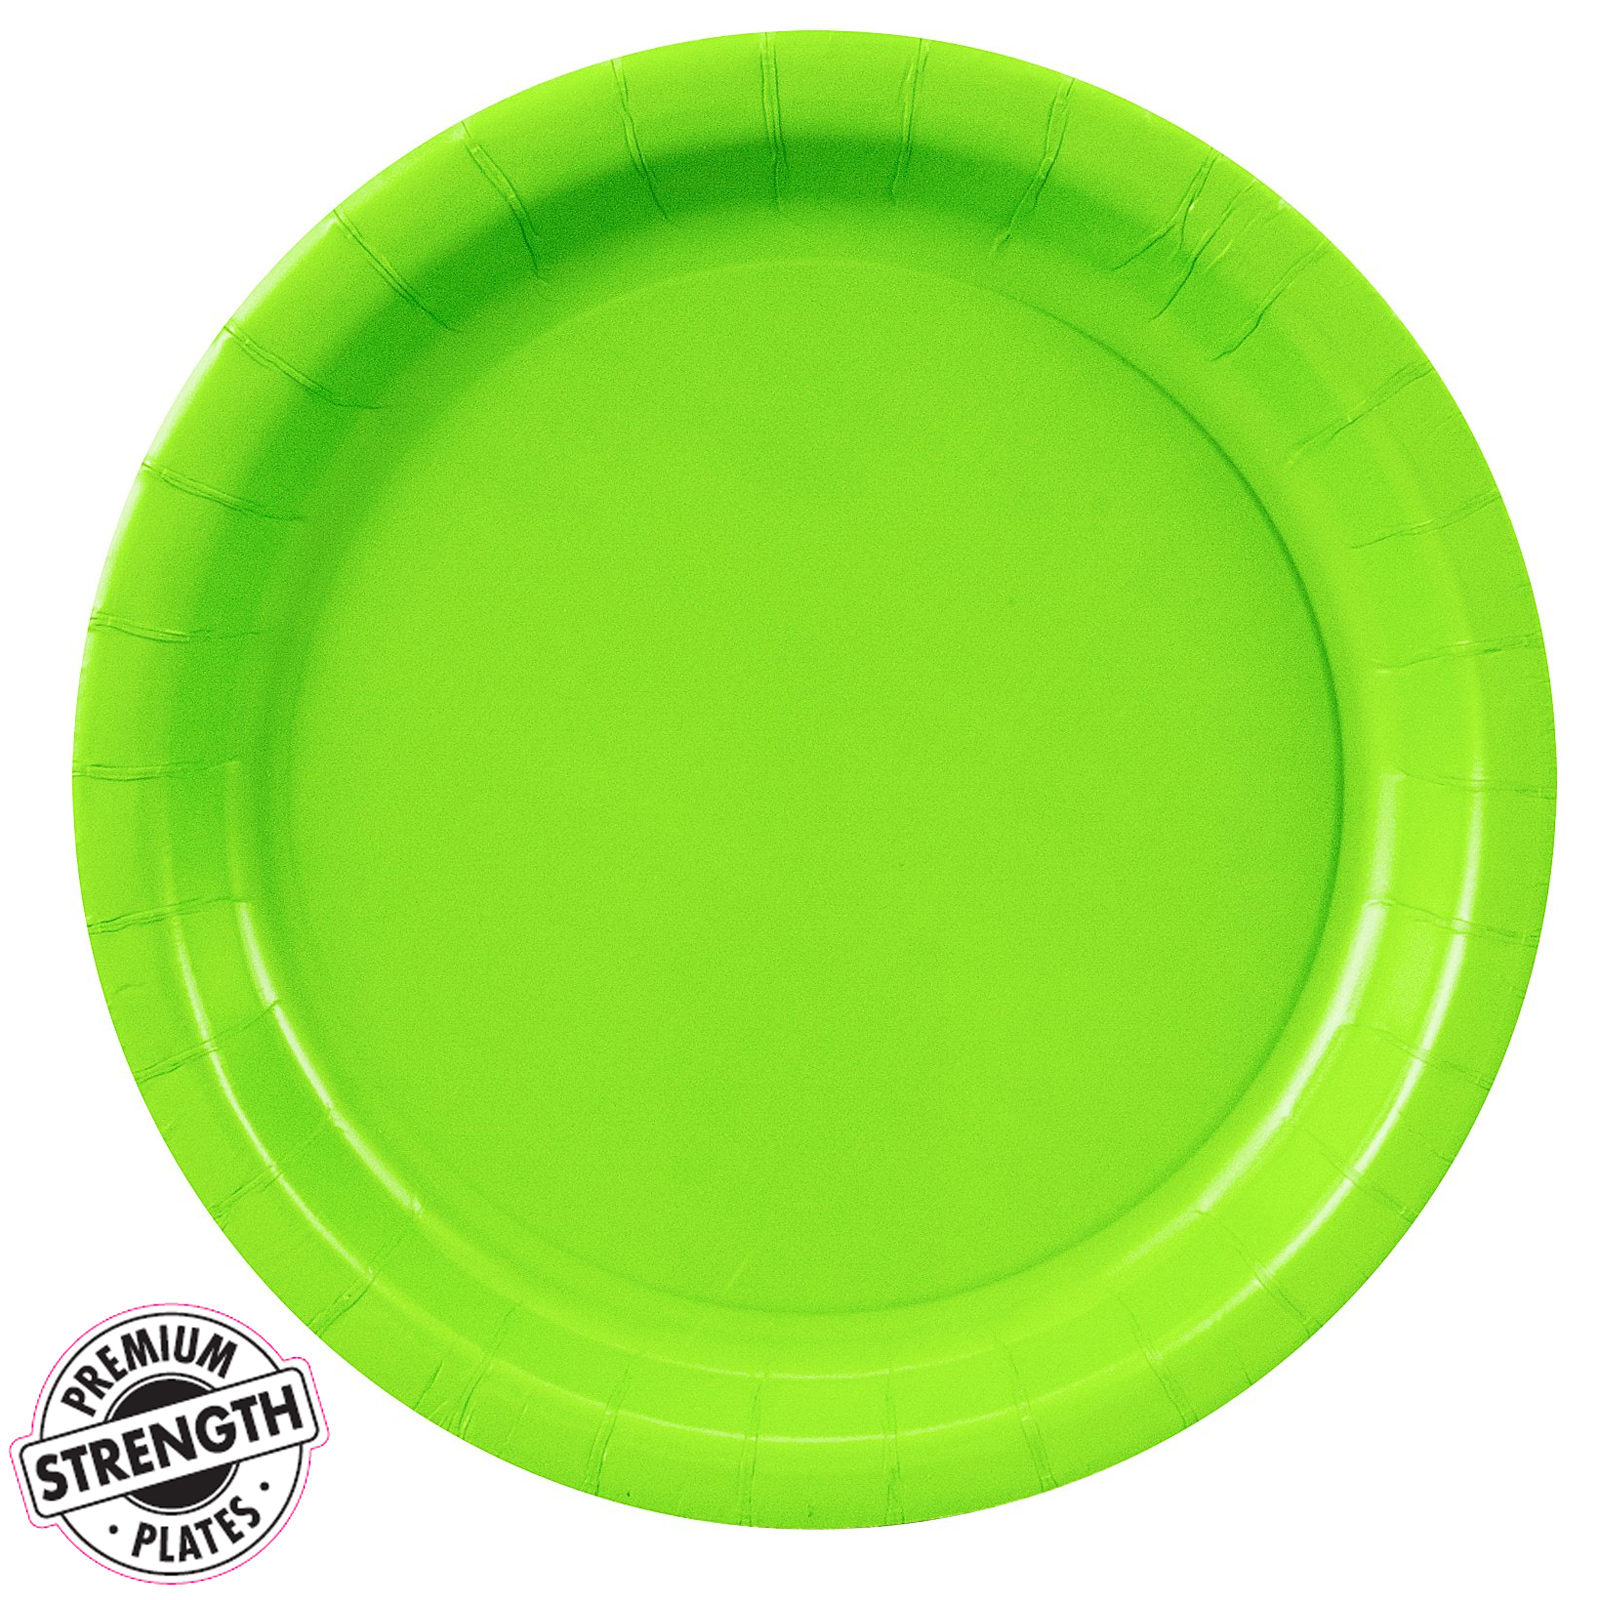 Enamelware Plates Lookup Beforebuying  sc 1 st  Castrophotos & Lime Green Dinner Plates - Castrophotos